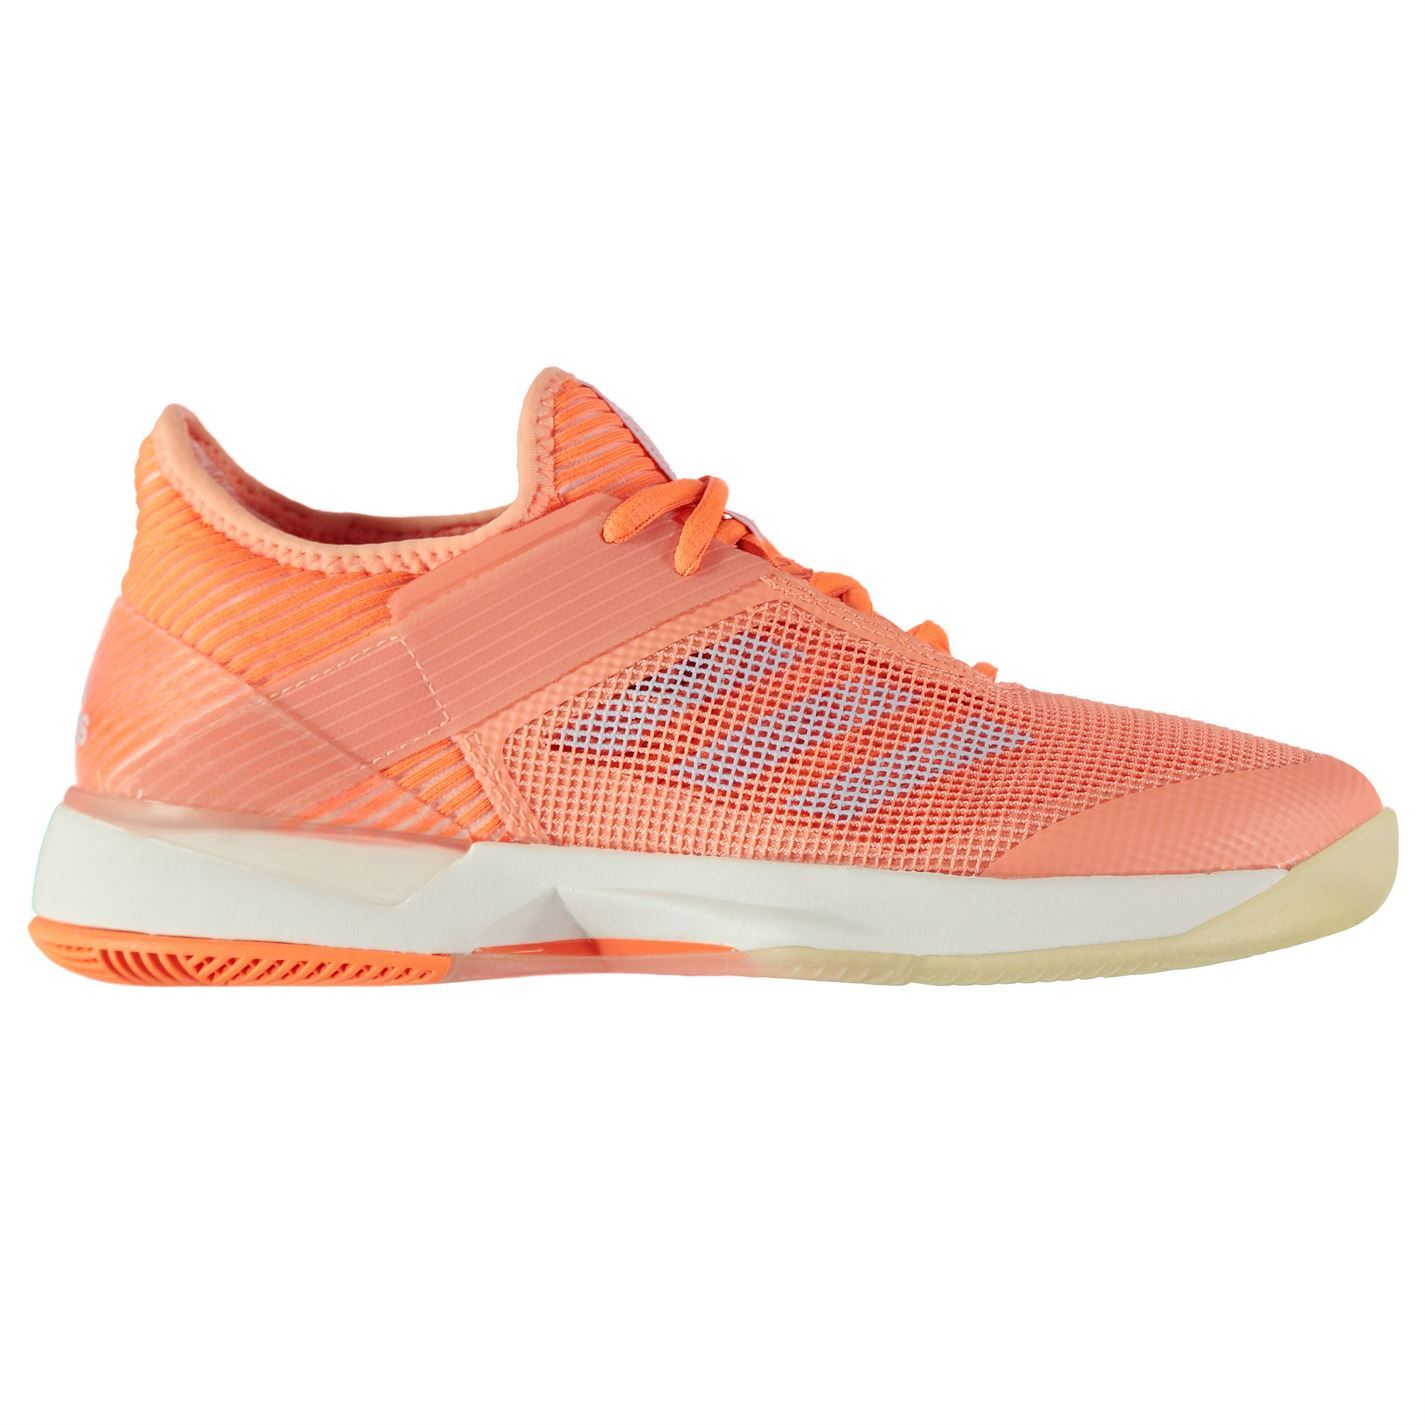 new product 2181c 276dd ... adidas Adizero Ubersonic 3 Tennis Shoes Womens Peach Court Trainers  Sneakers ...